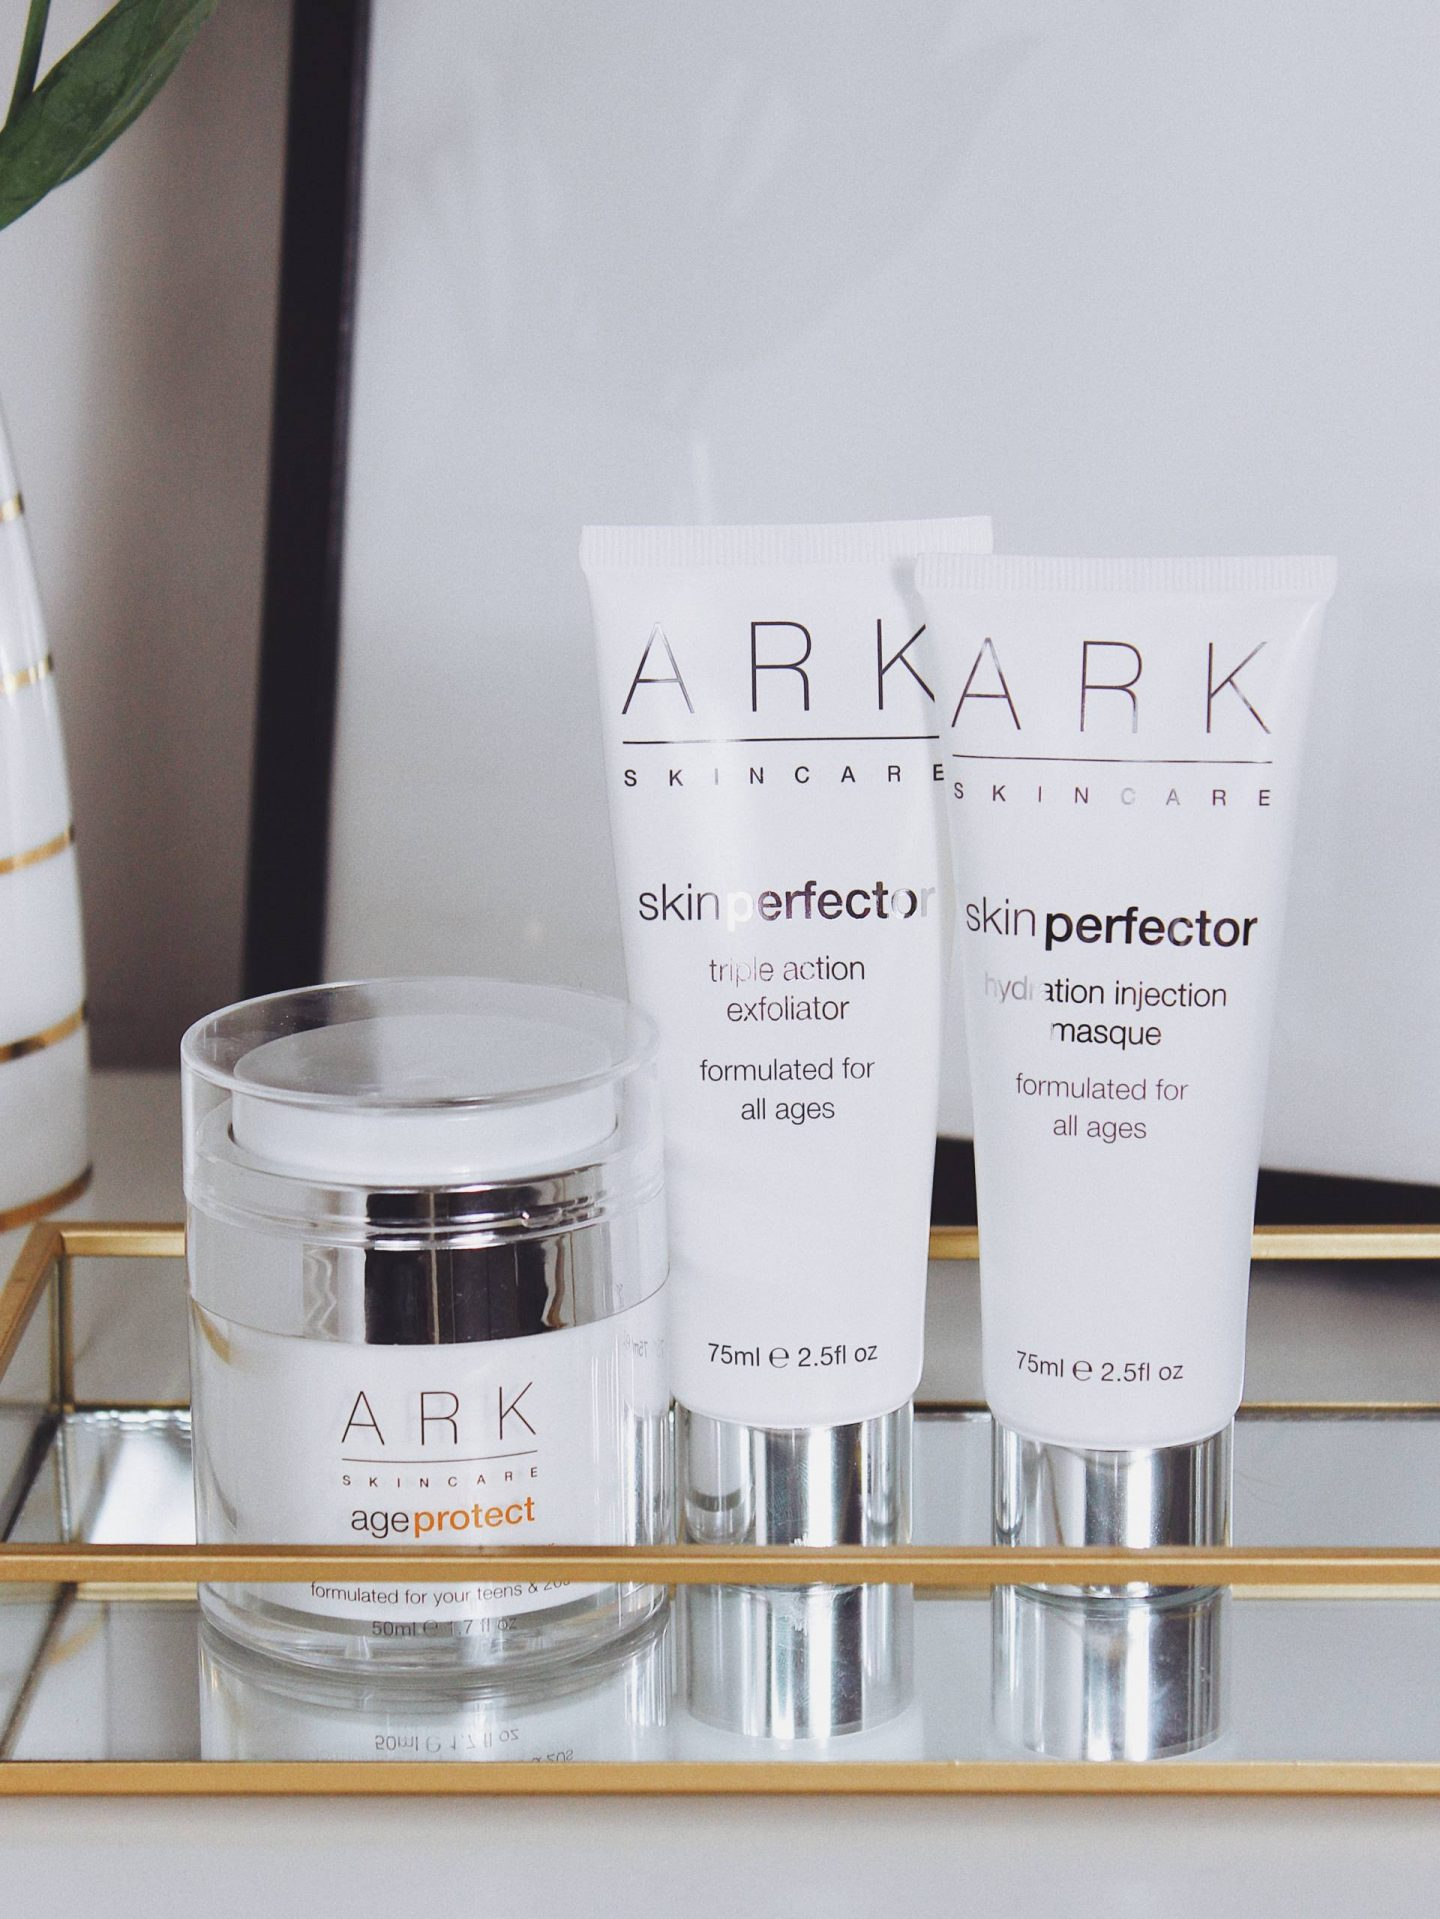 ARK Skin Perfector products